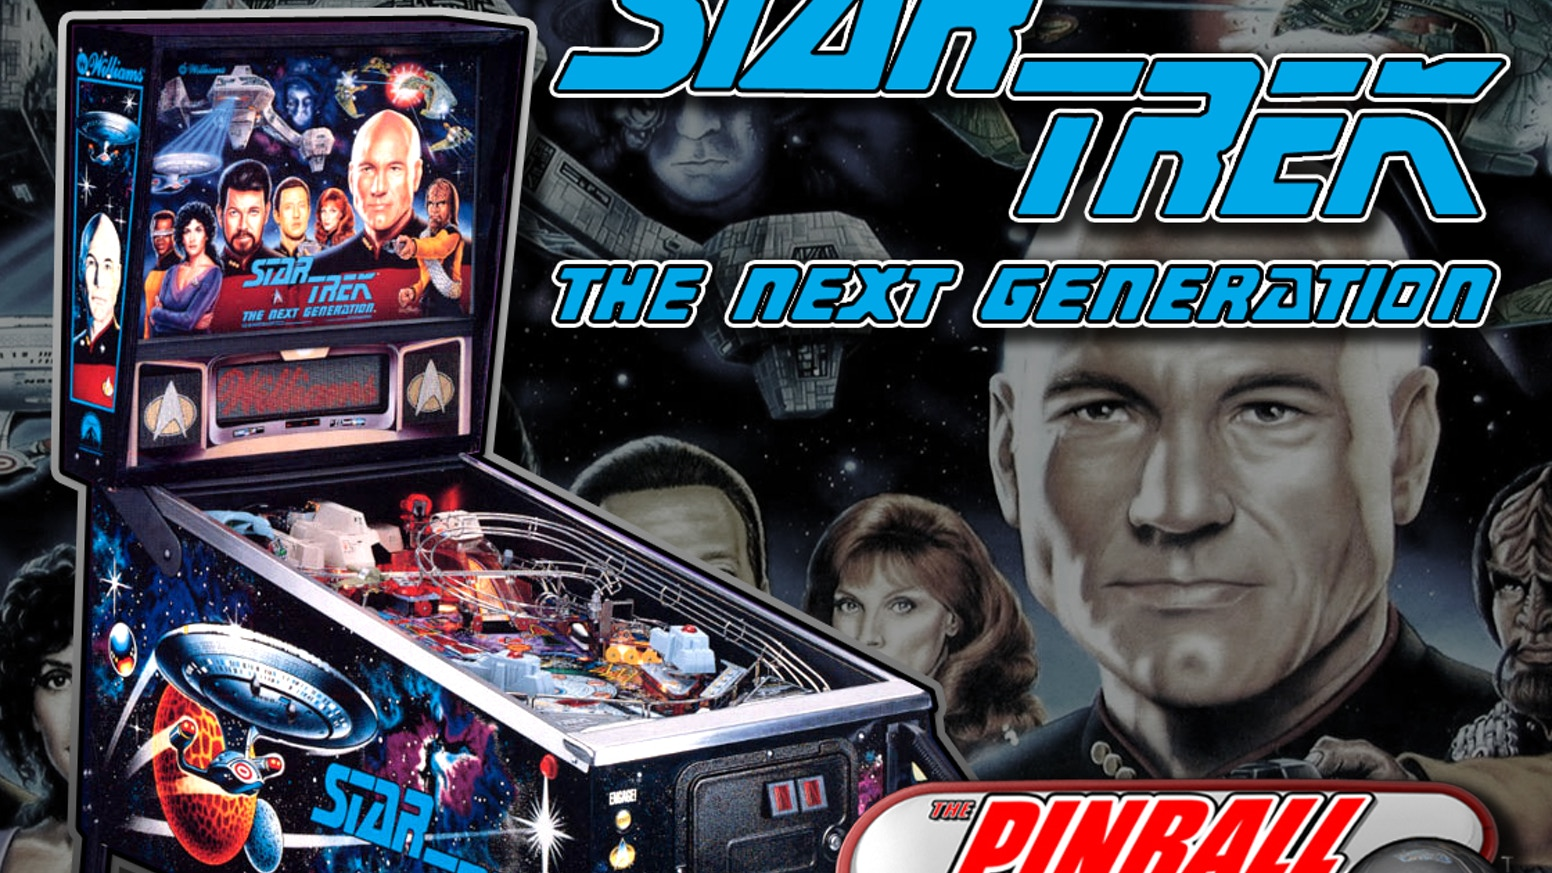 Help us bring the Star Trek: The Next Generation pinball table to game consoles and mobile devices for a whole new generation to enjoy!